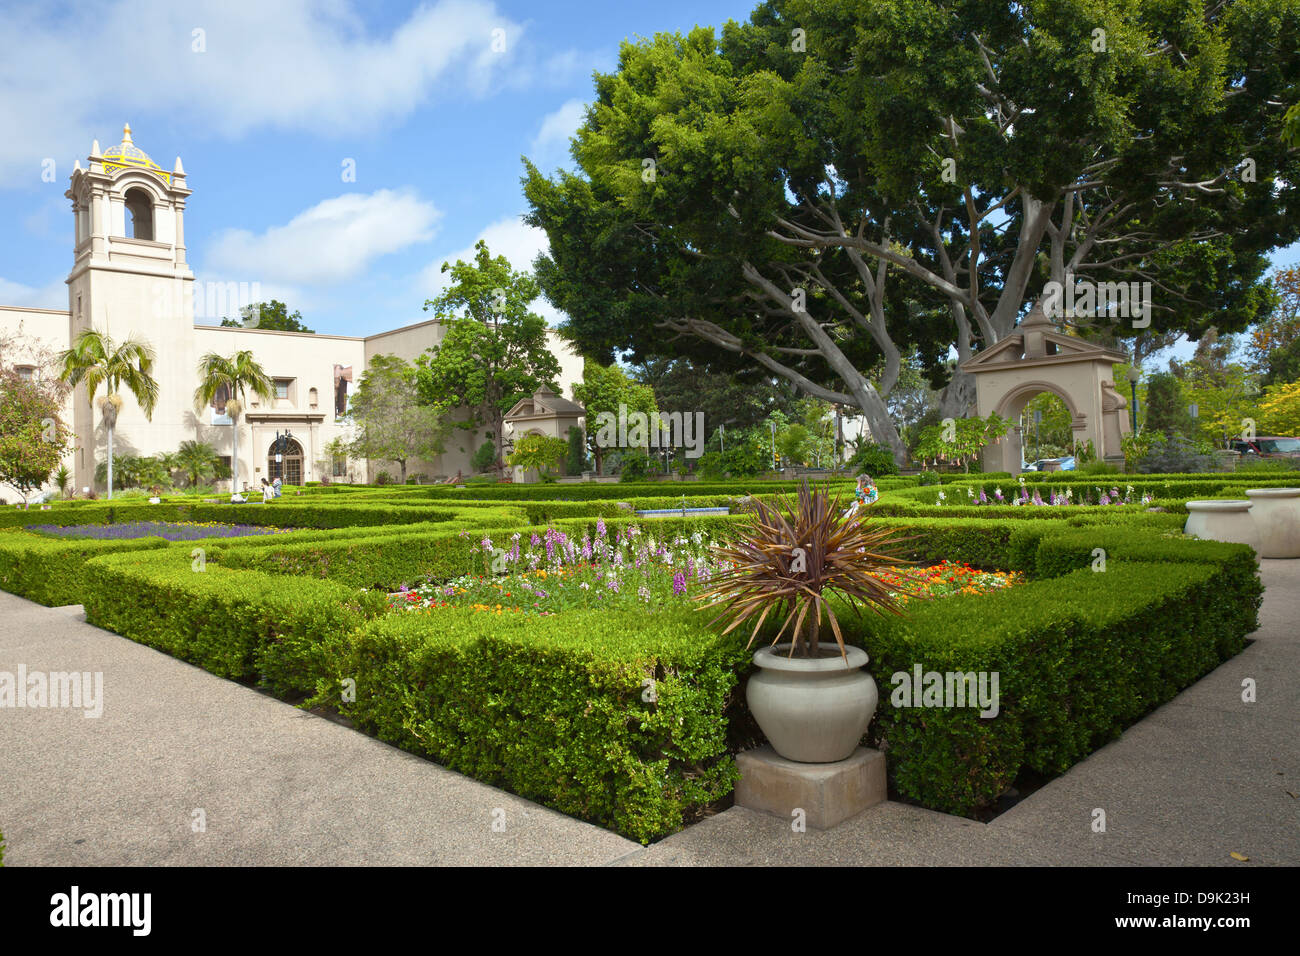 Balboa Park Gardens And Building In San Diego California